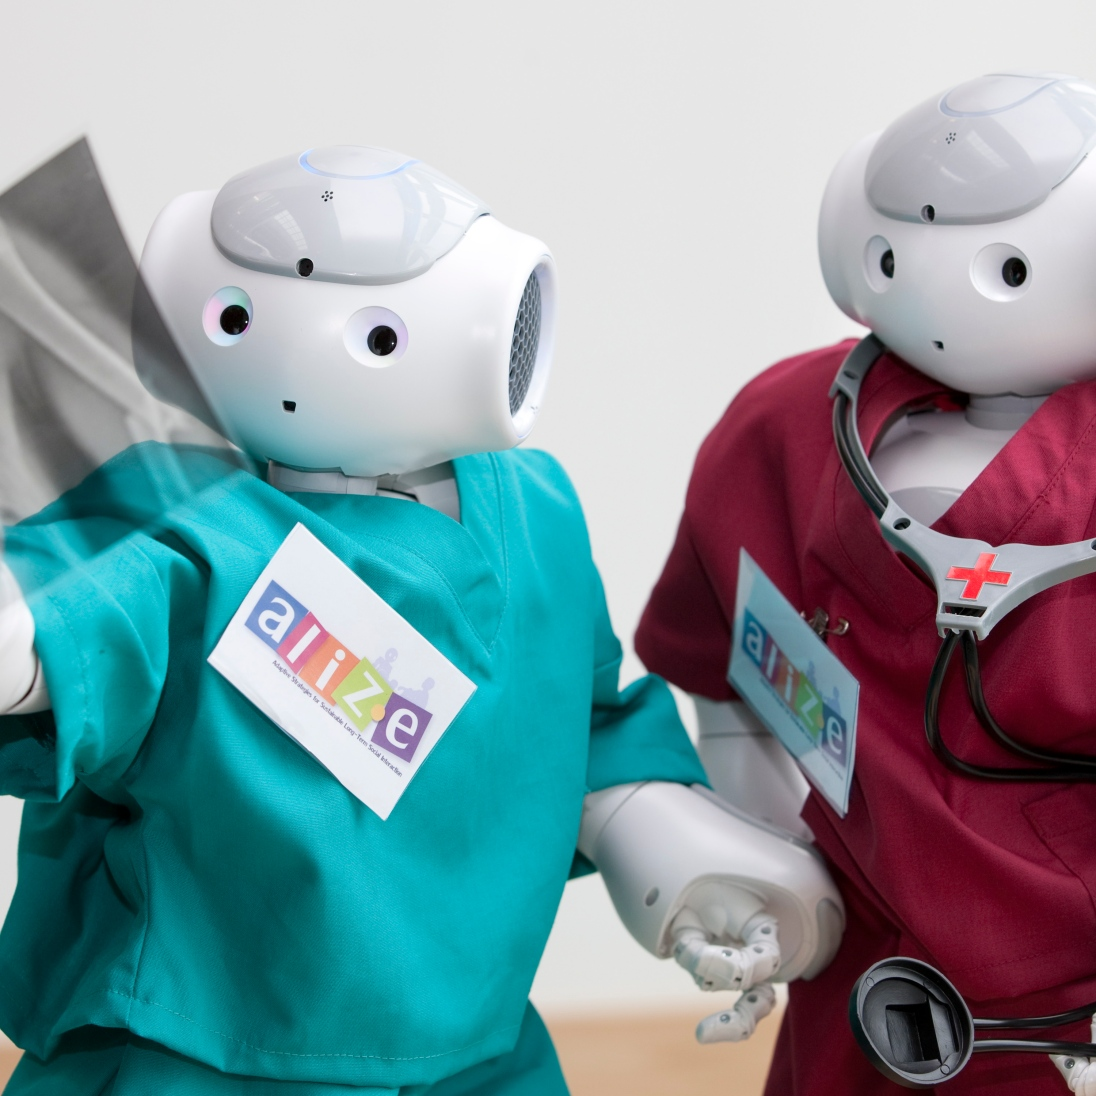 The ALIZ-E project studied how social robots could support children during a stay in hospital: we used the Softbank Robotics Nao robot